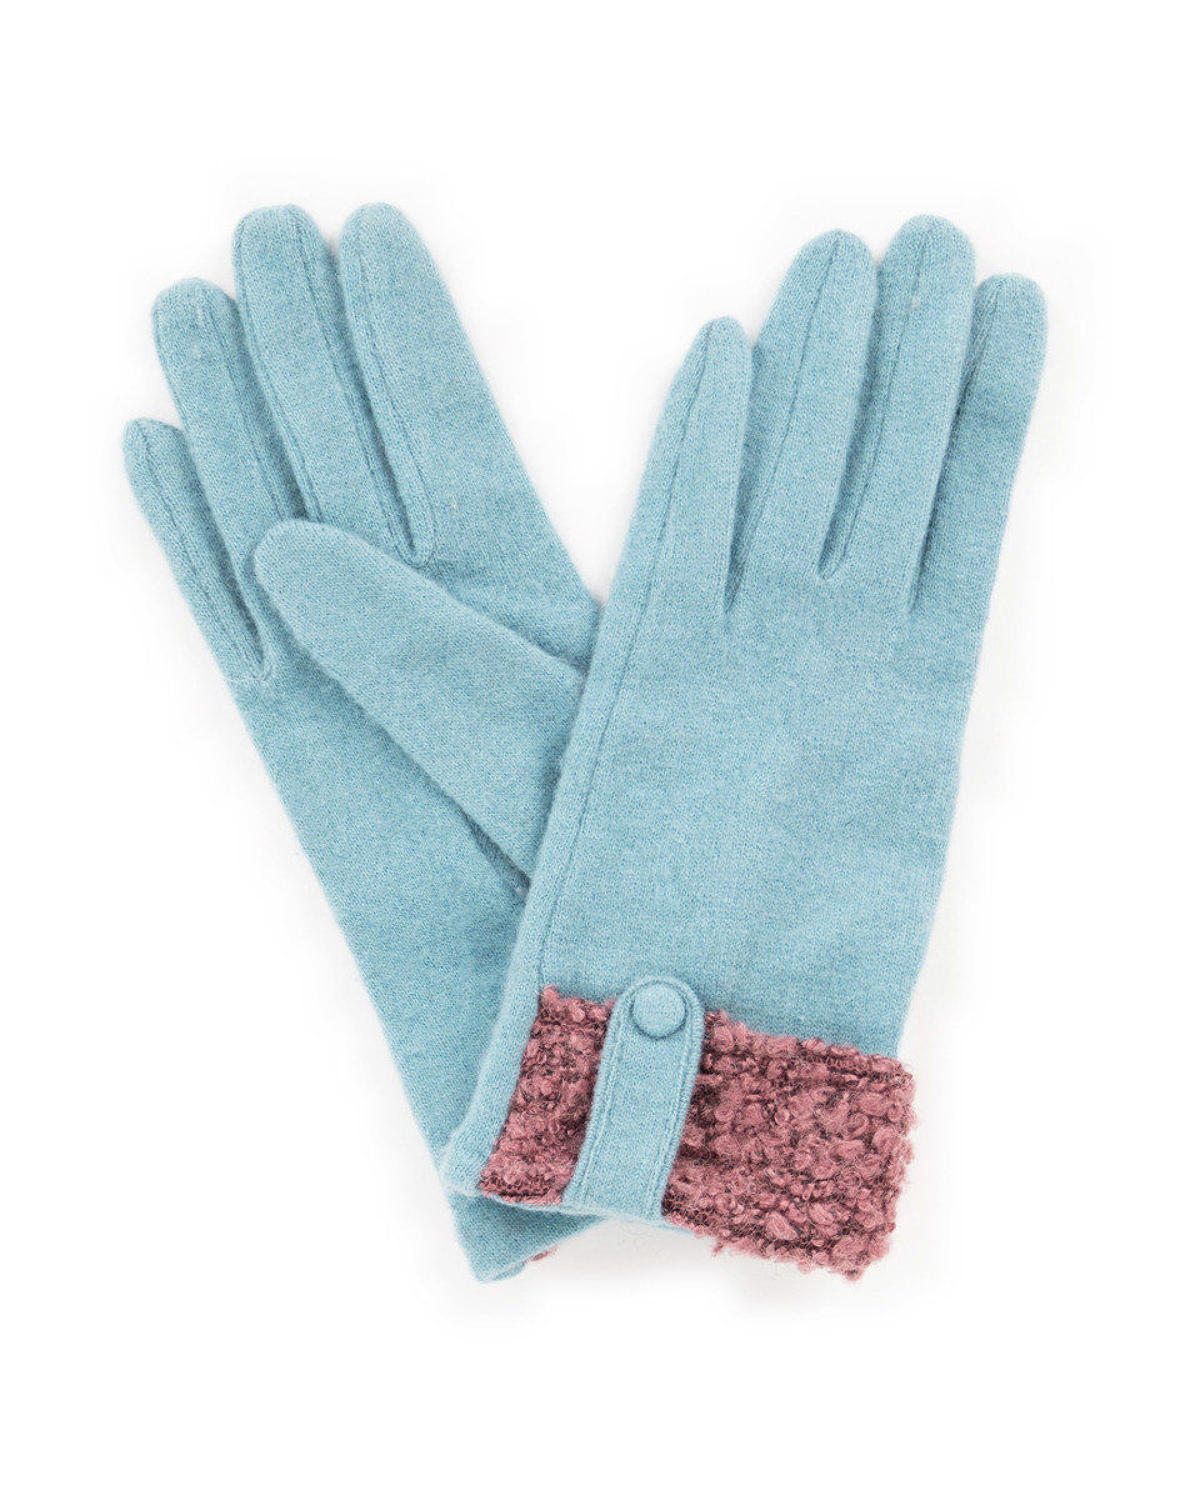 Powder - Monica wool gloves in Ice - One size